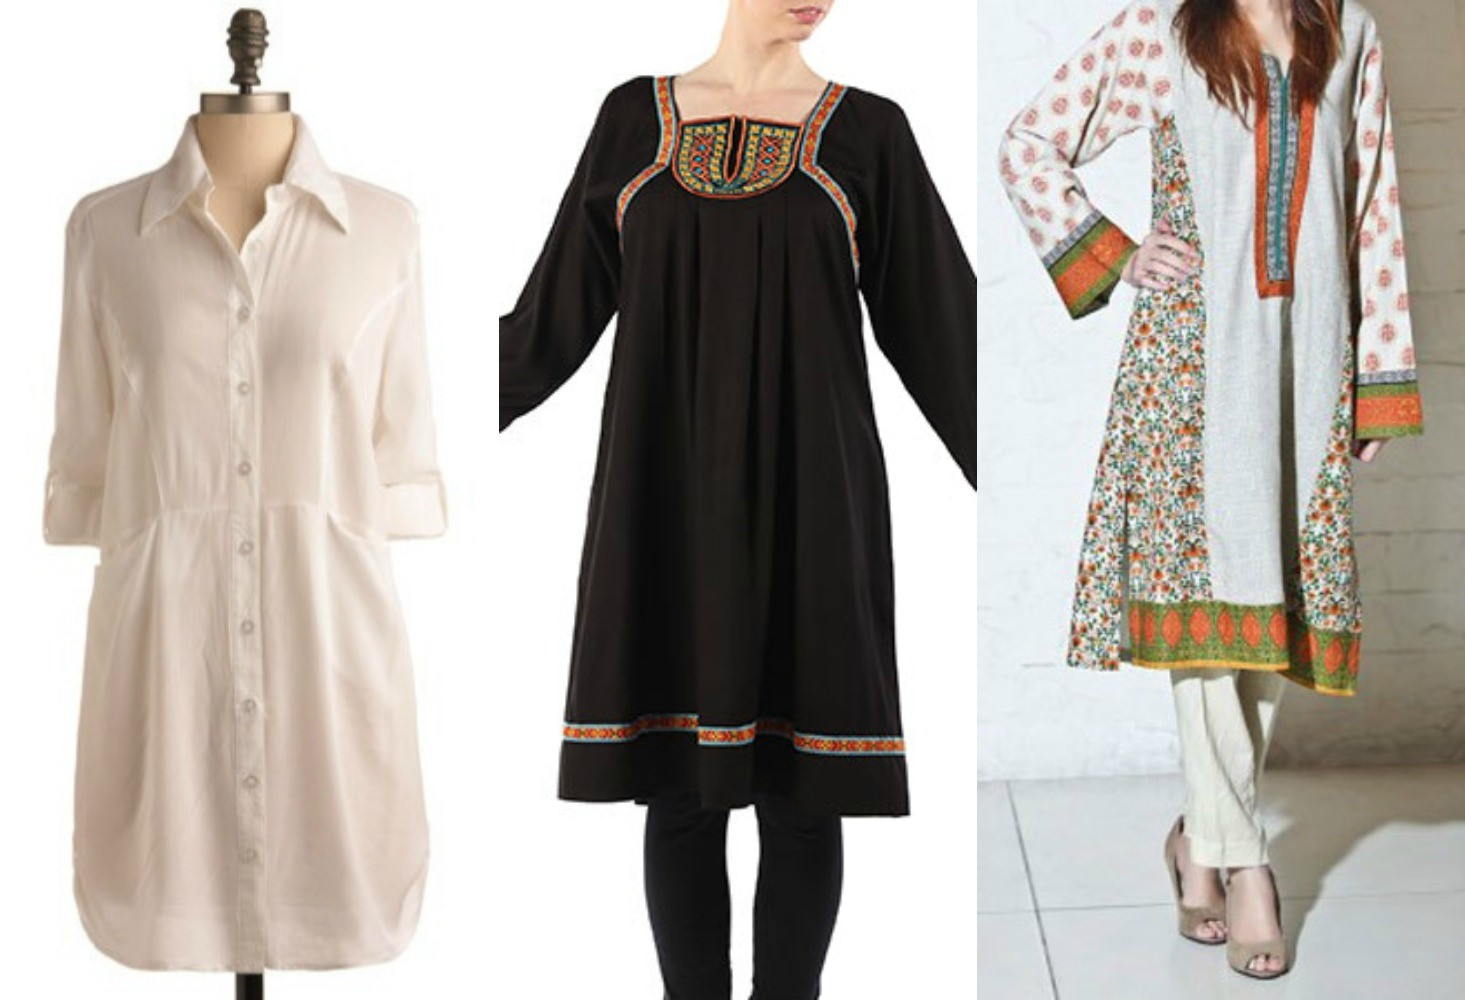 GUIDE: A HIJABI'S SUMMER WARDROBE 101 (Guest Post)